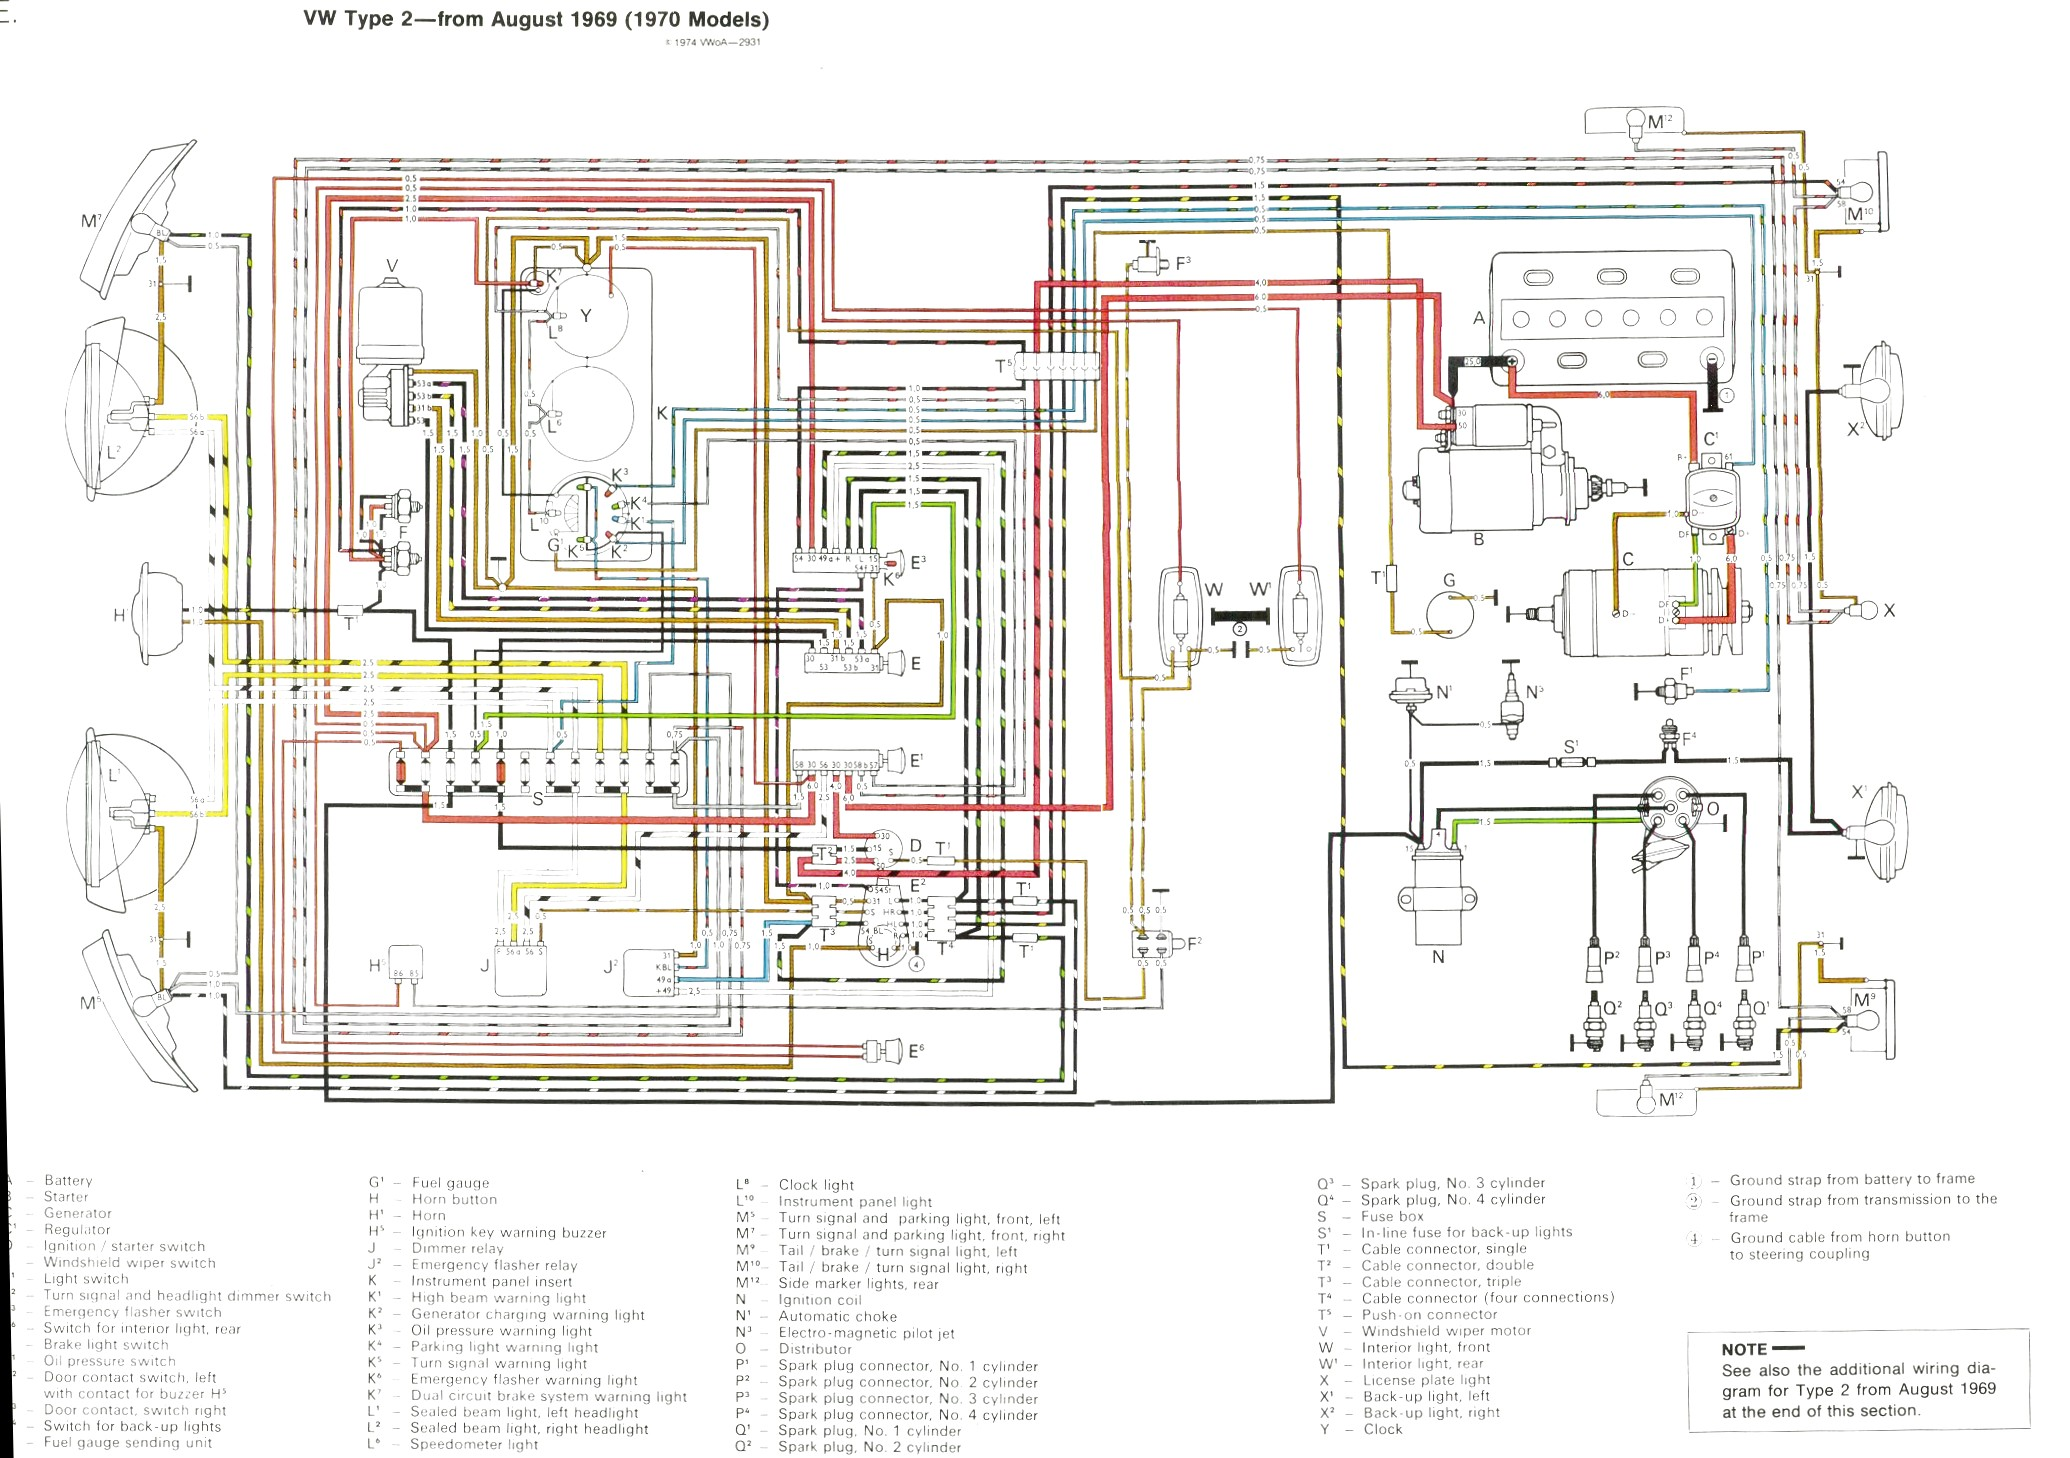 bus 69 70 baywindow fusebox layout vw transporter fuse box layout 2014 at crackthecode.co